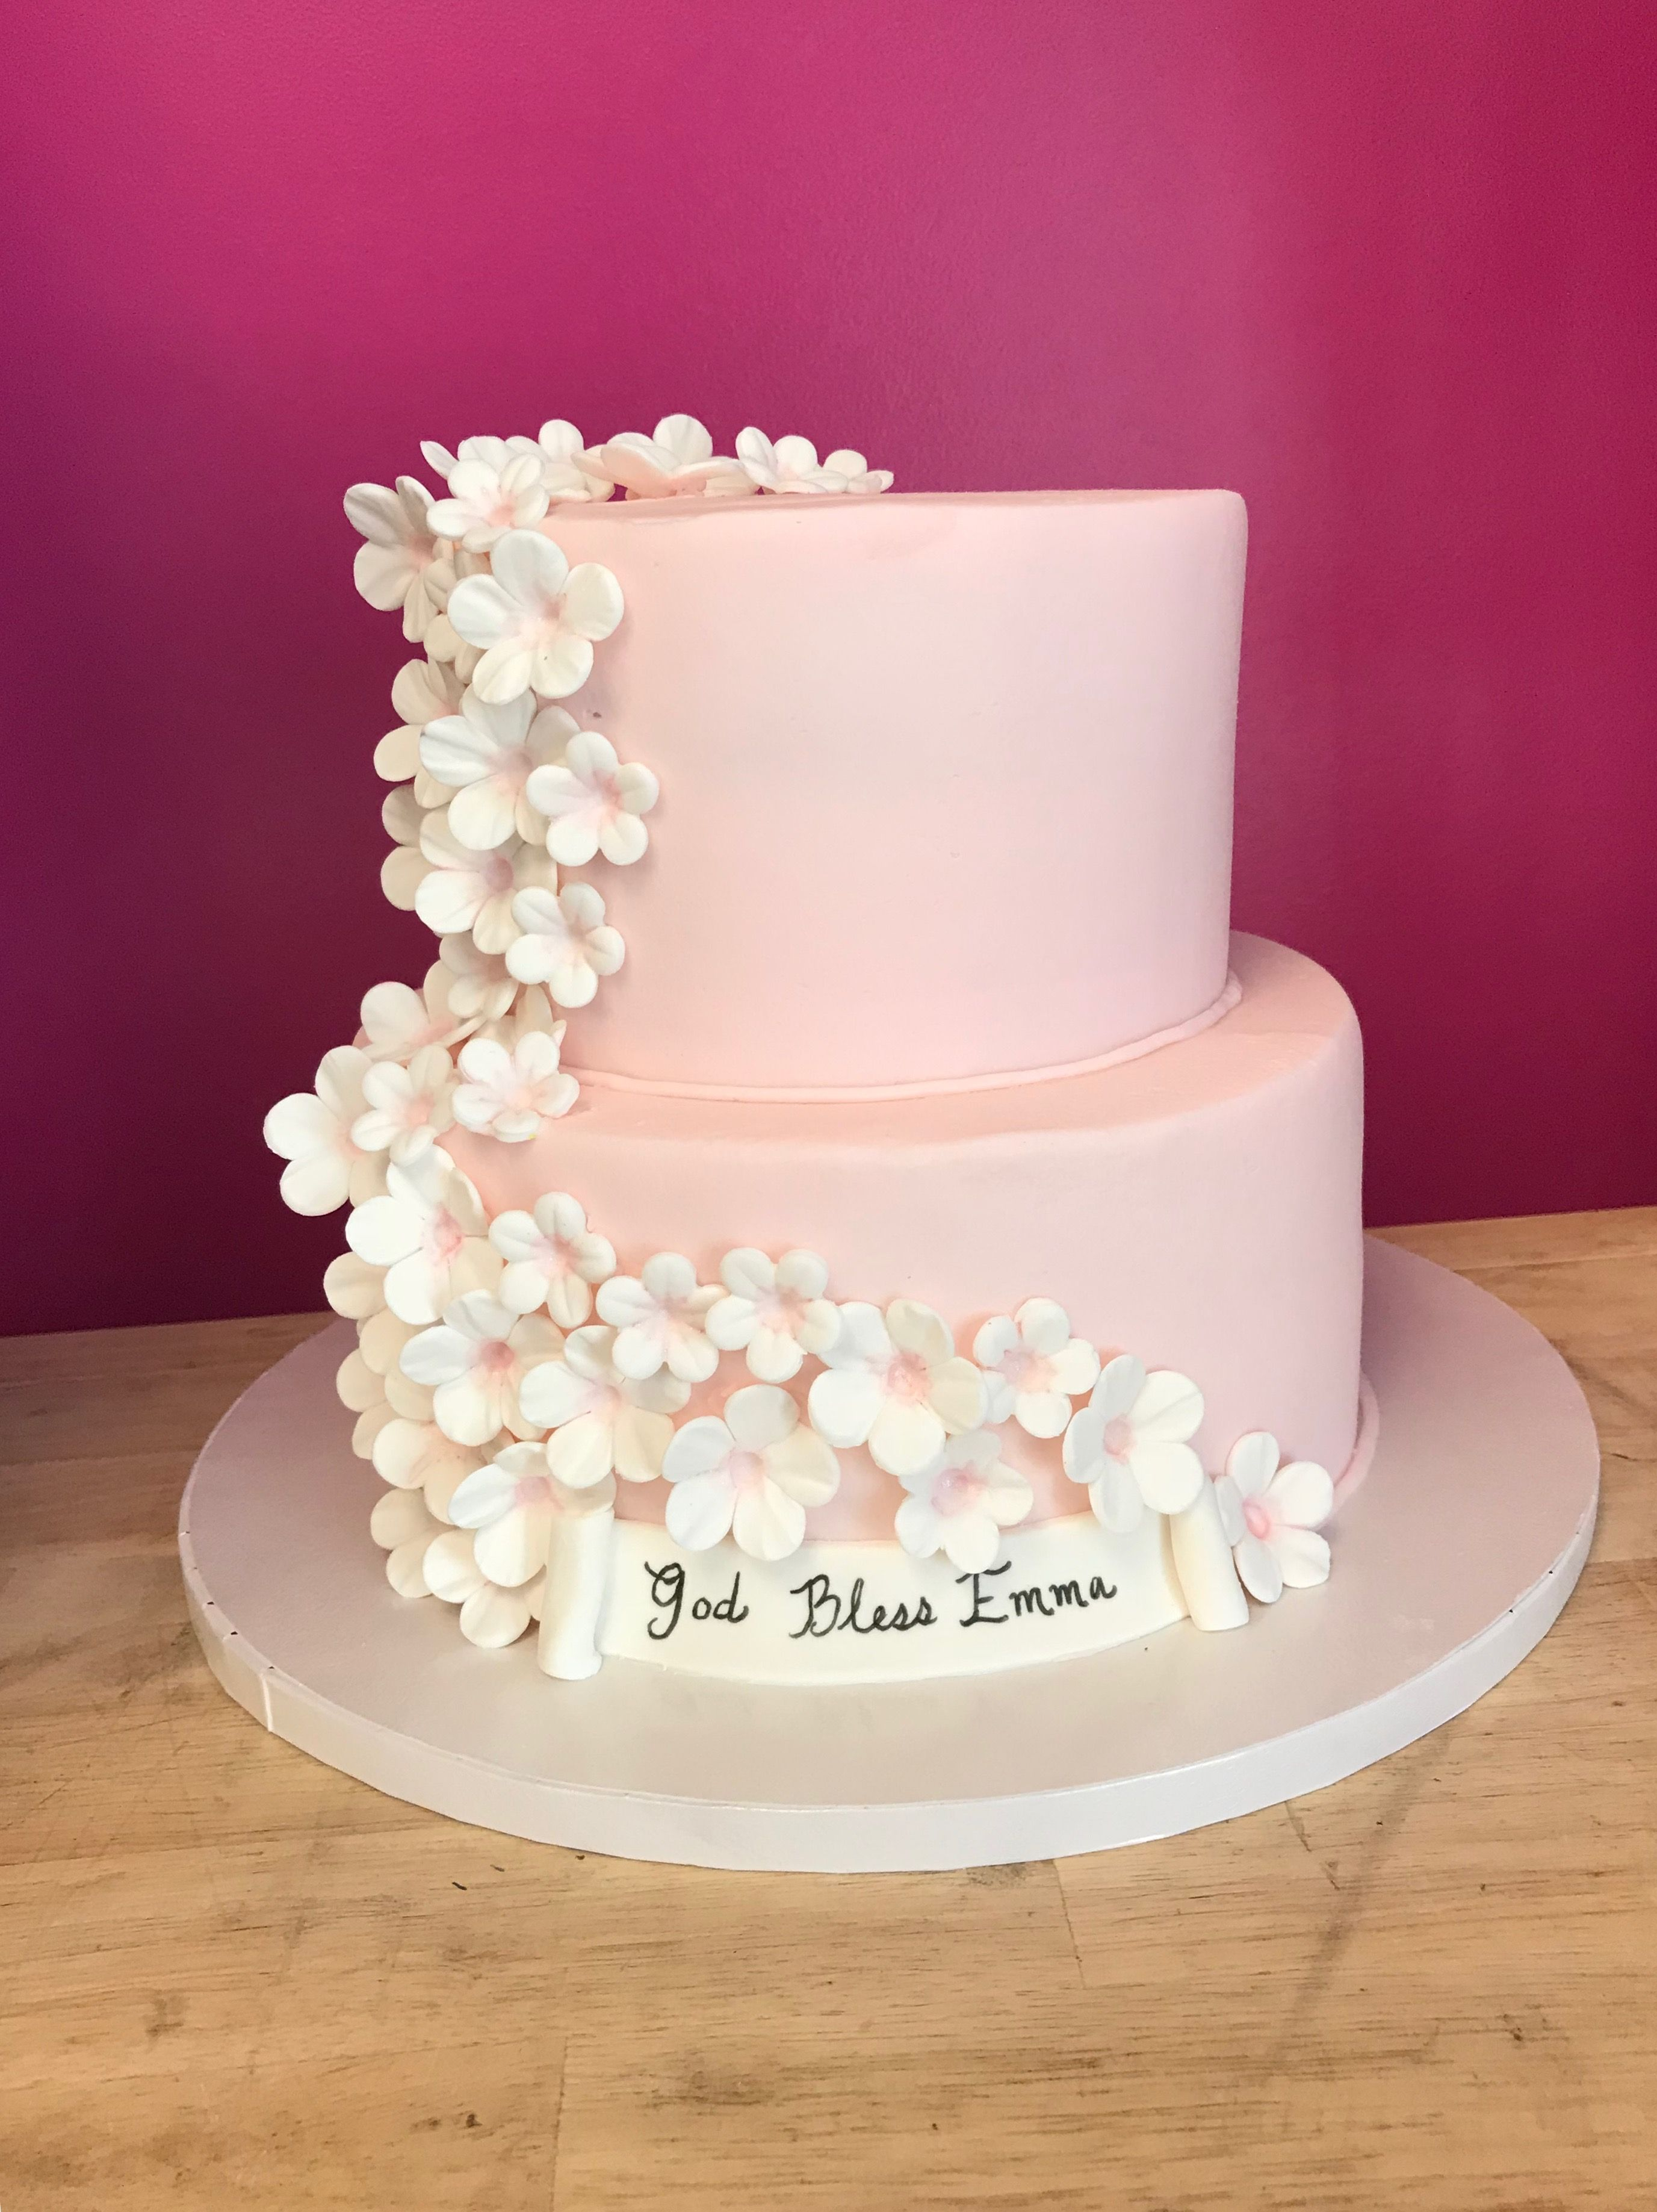 2 Tier Cascading Blossom Cake With Images Tiered Cakes